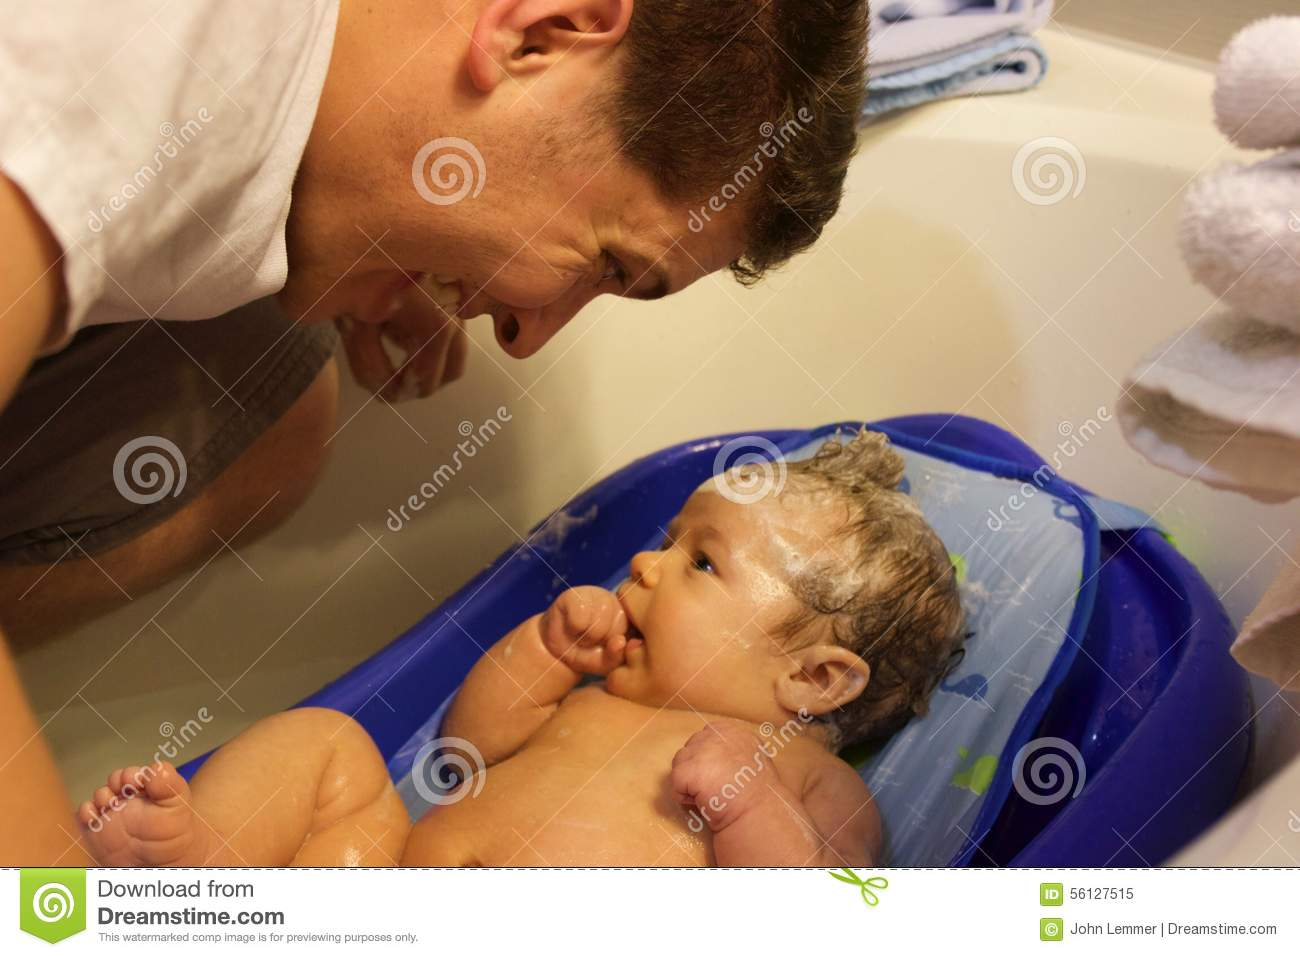 Father Giving Baby Boy A Bath Stock Image - Image of soap, adorable ...